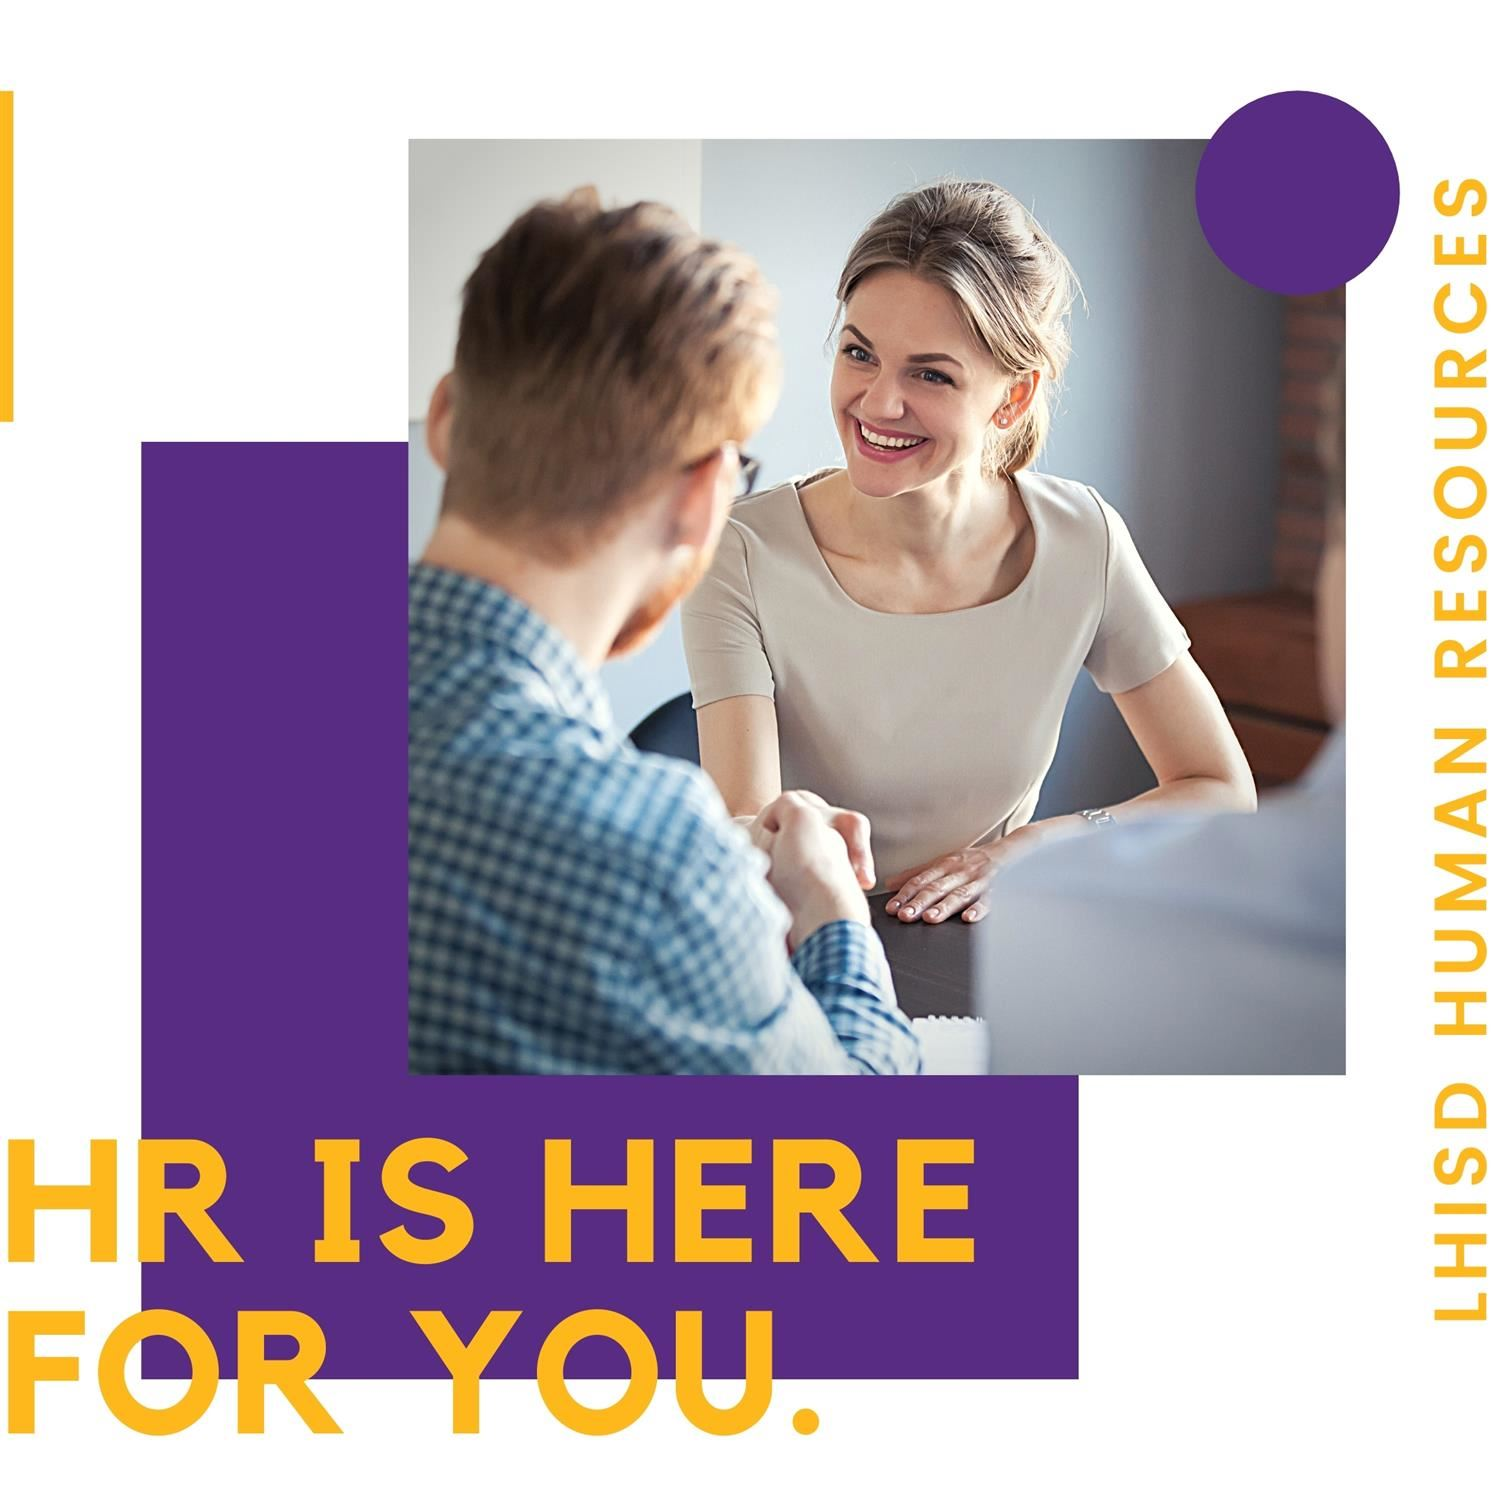 HR is Here for you